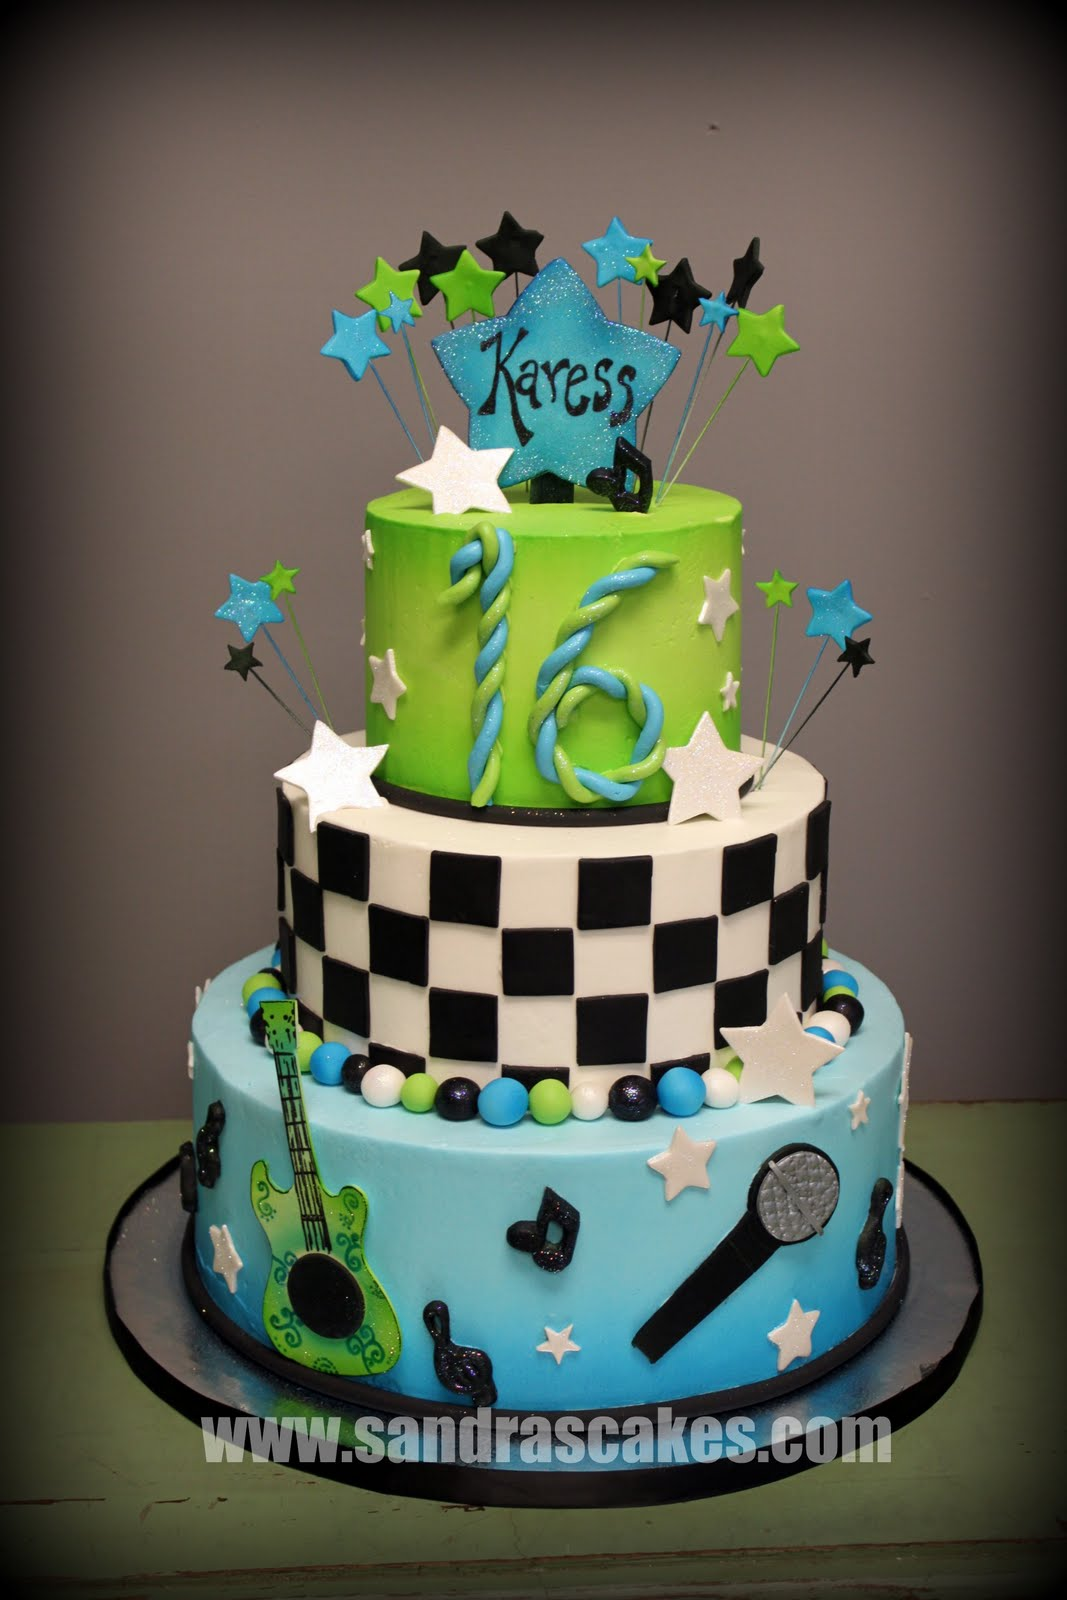 Cake Pictures For Sweet Sixteen : Sweet Sixteen Cakes